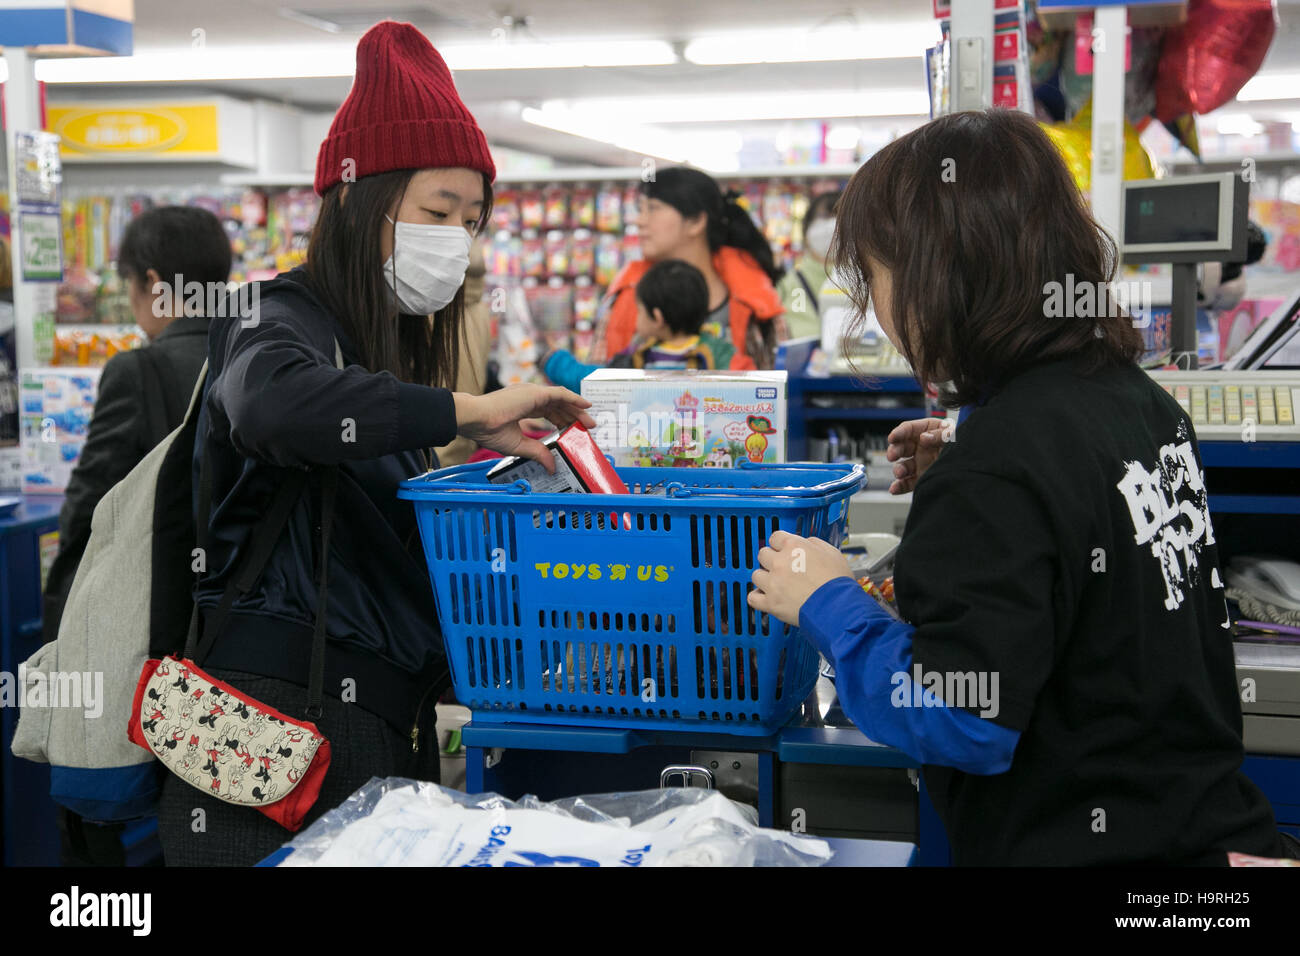 Customers Wait In A Checkout Line On Black Friday At A Toys R Us Stock Photo Alamy